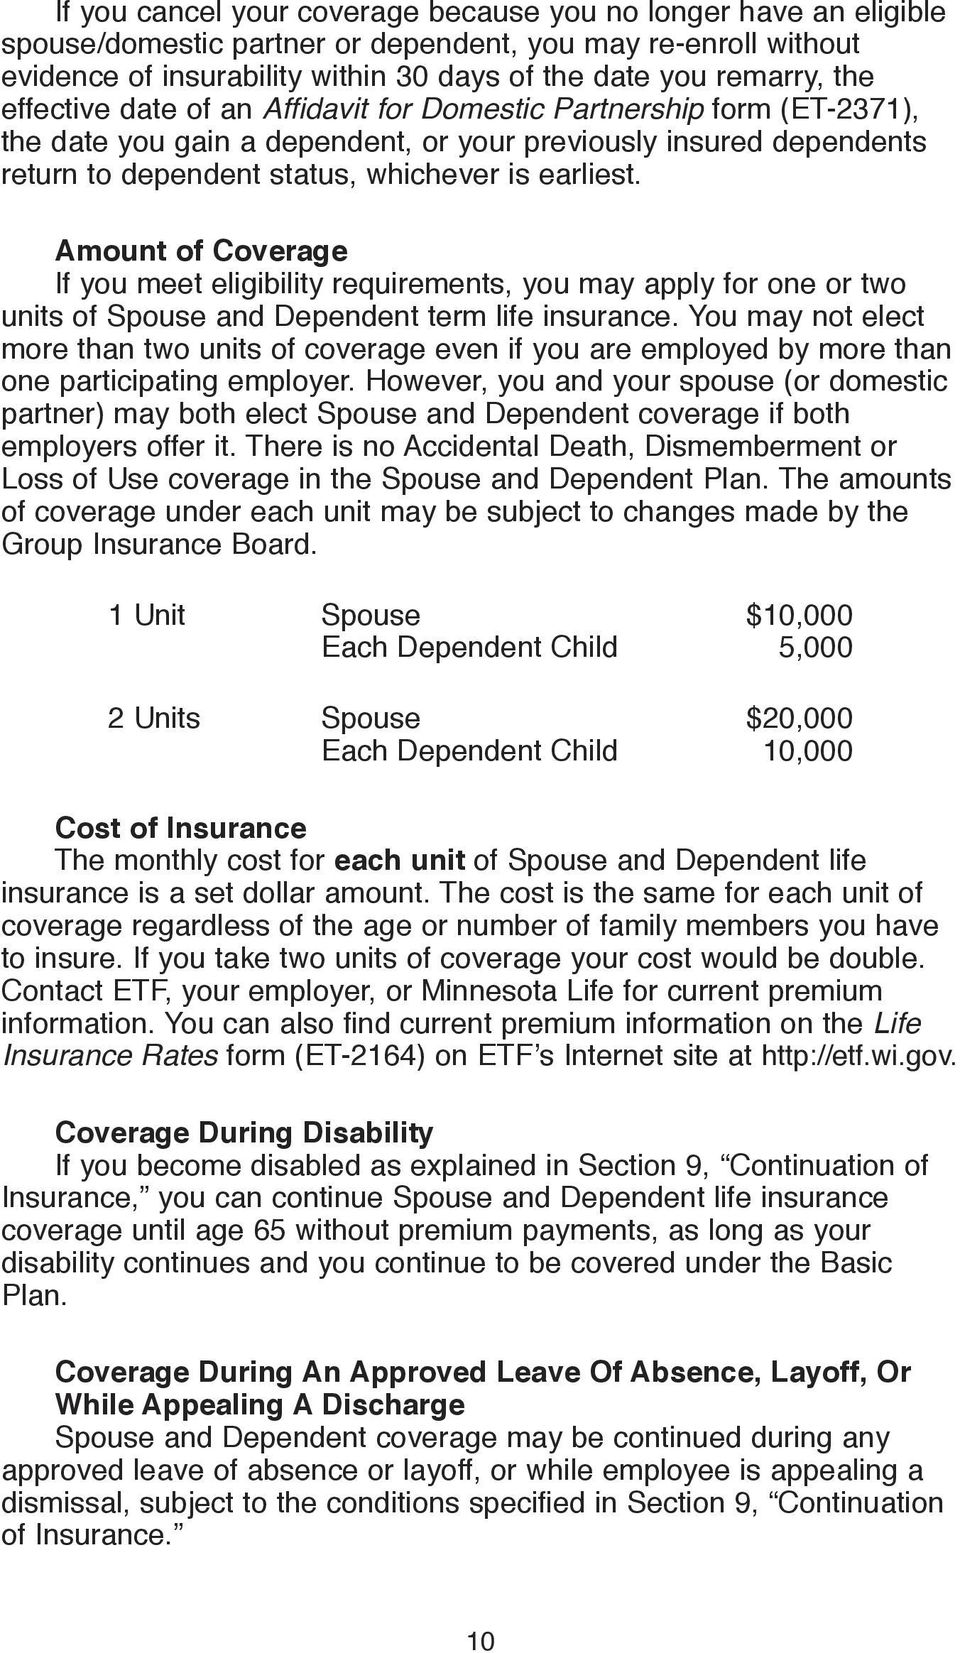 Amount of Coverage If you meet eligibility requirements, you may apply for one or two units of Spouse and Dependent term life insurance.